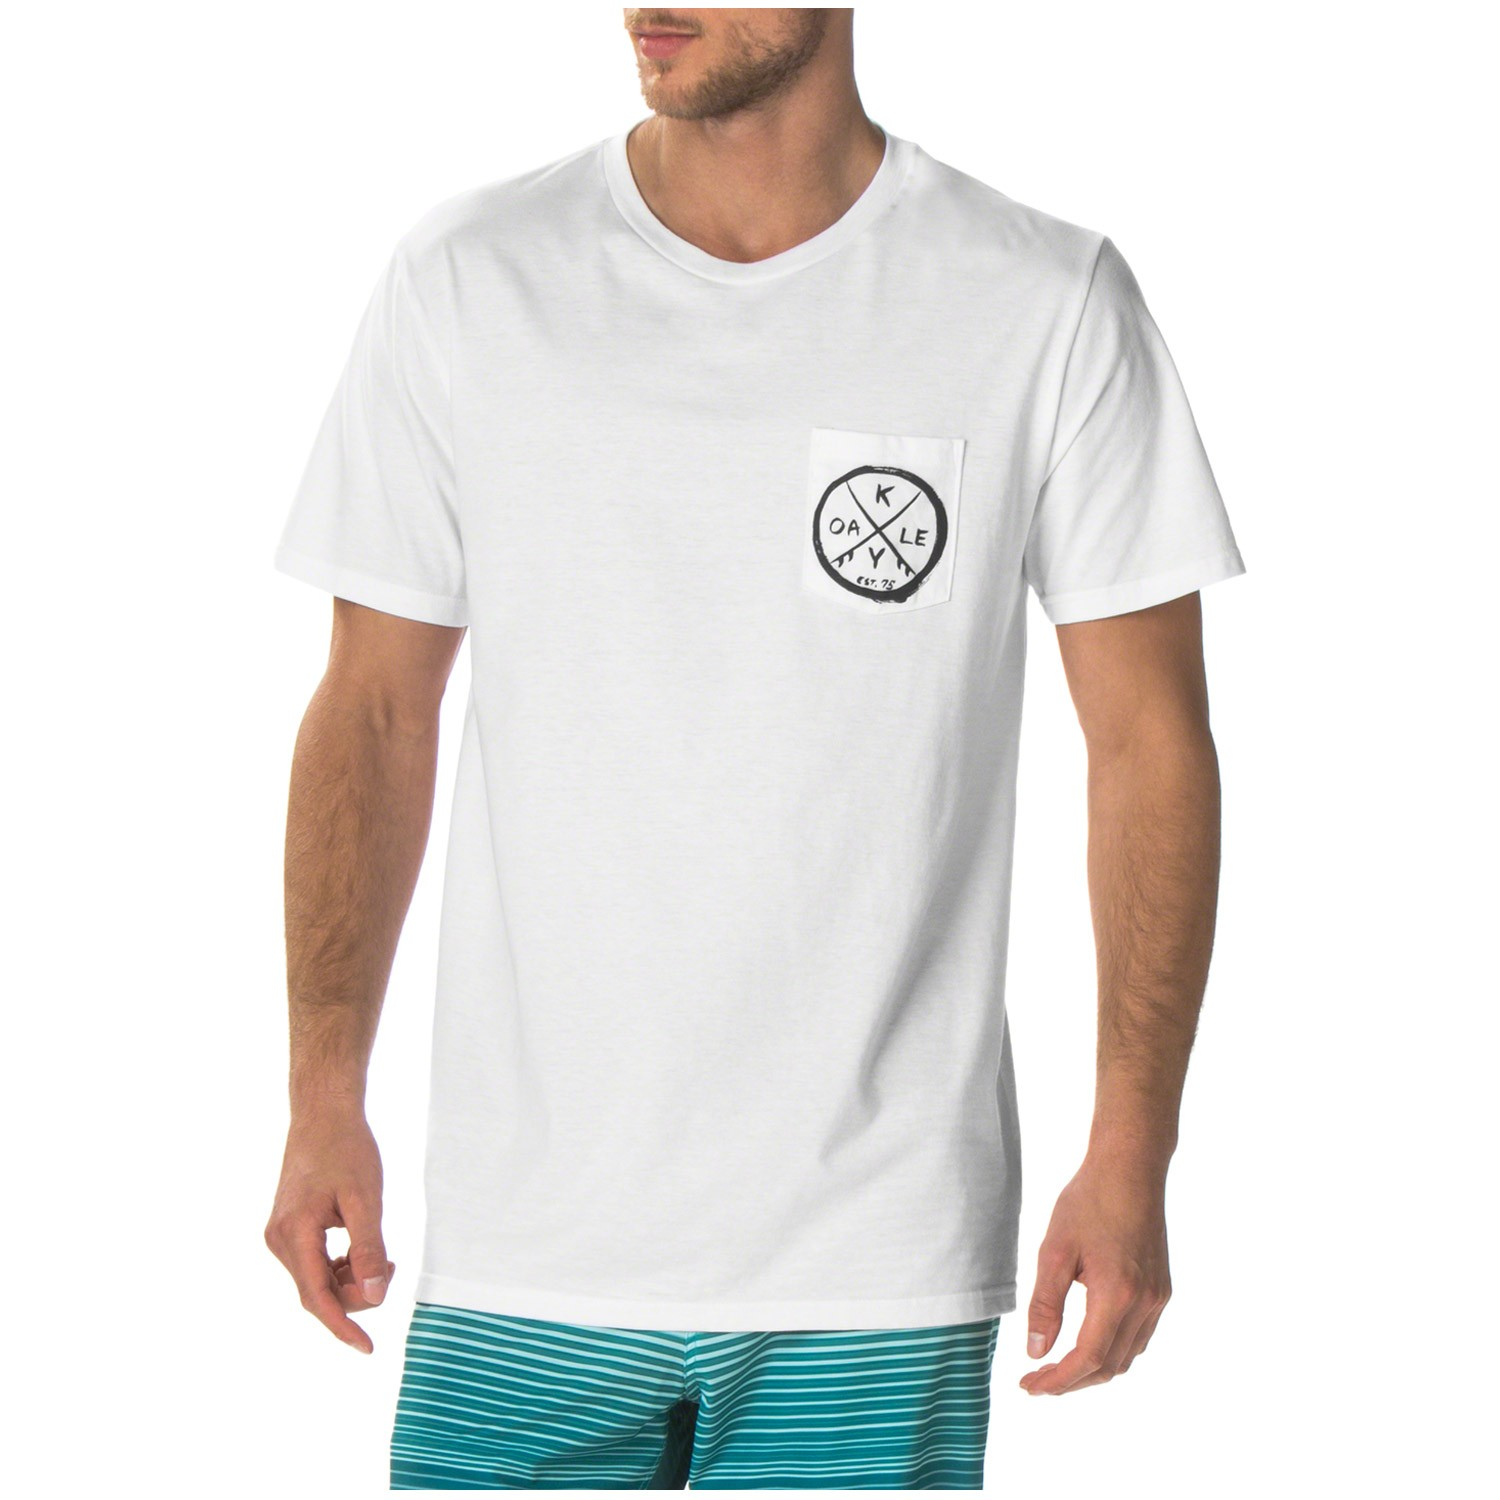 Ahoy t shirt white oakley ahoy t shirt white nvjuhfo Images